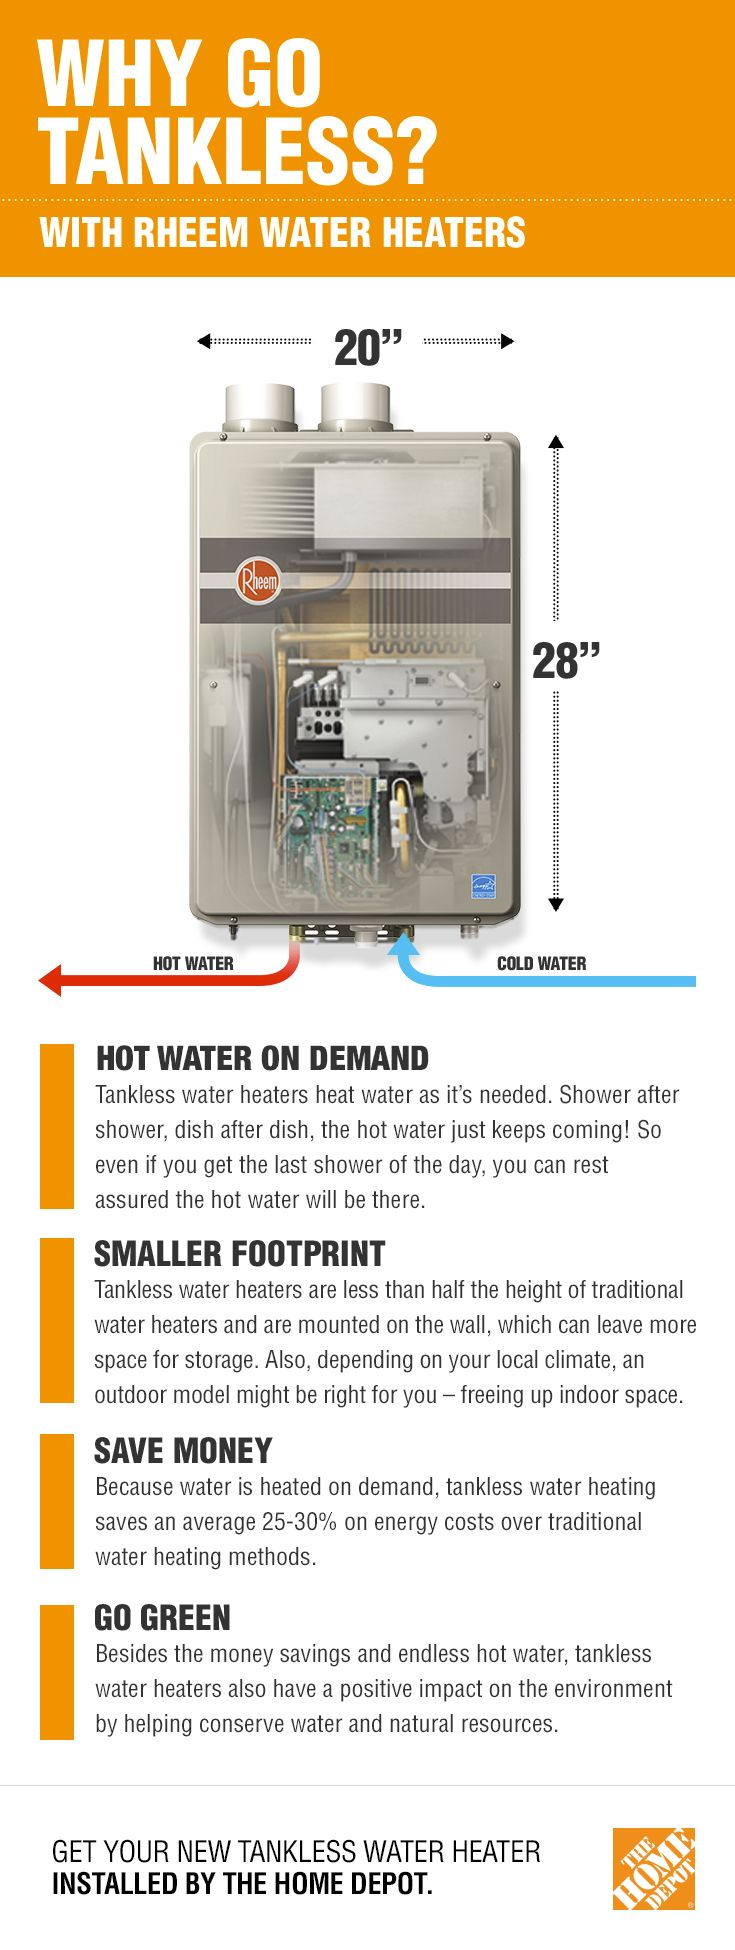 Pros and cons of gas tankless water heaters - Tankless Water Heaters Will Help You Save Space And Money Unlike Traditional Water Heaters